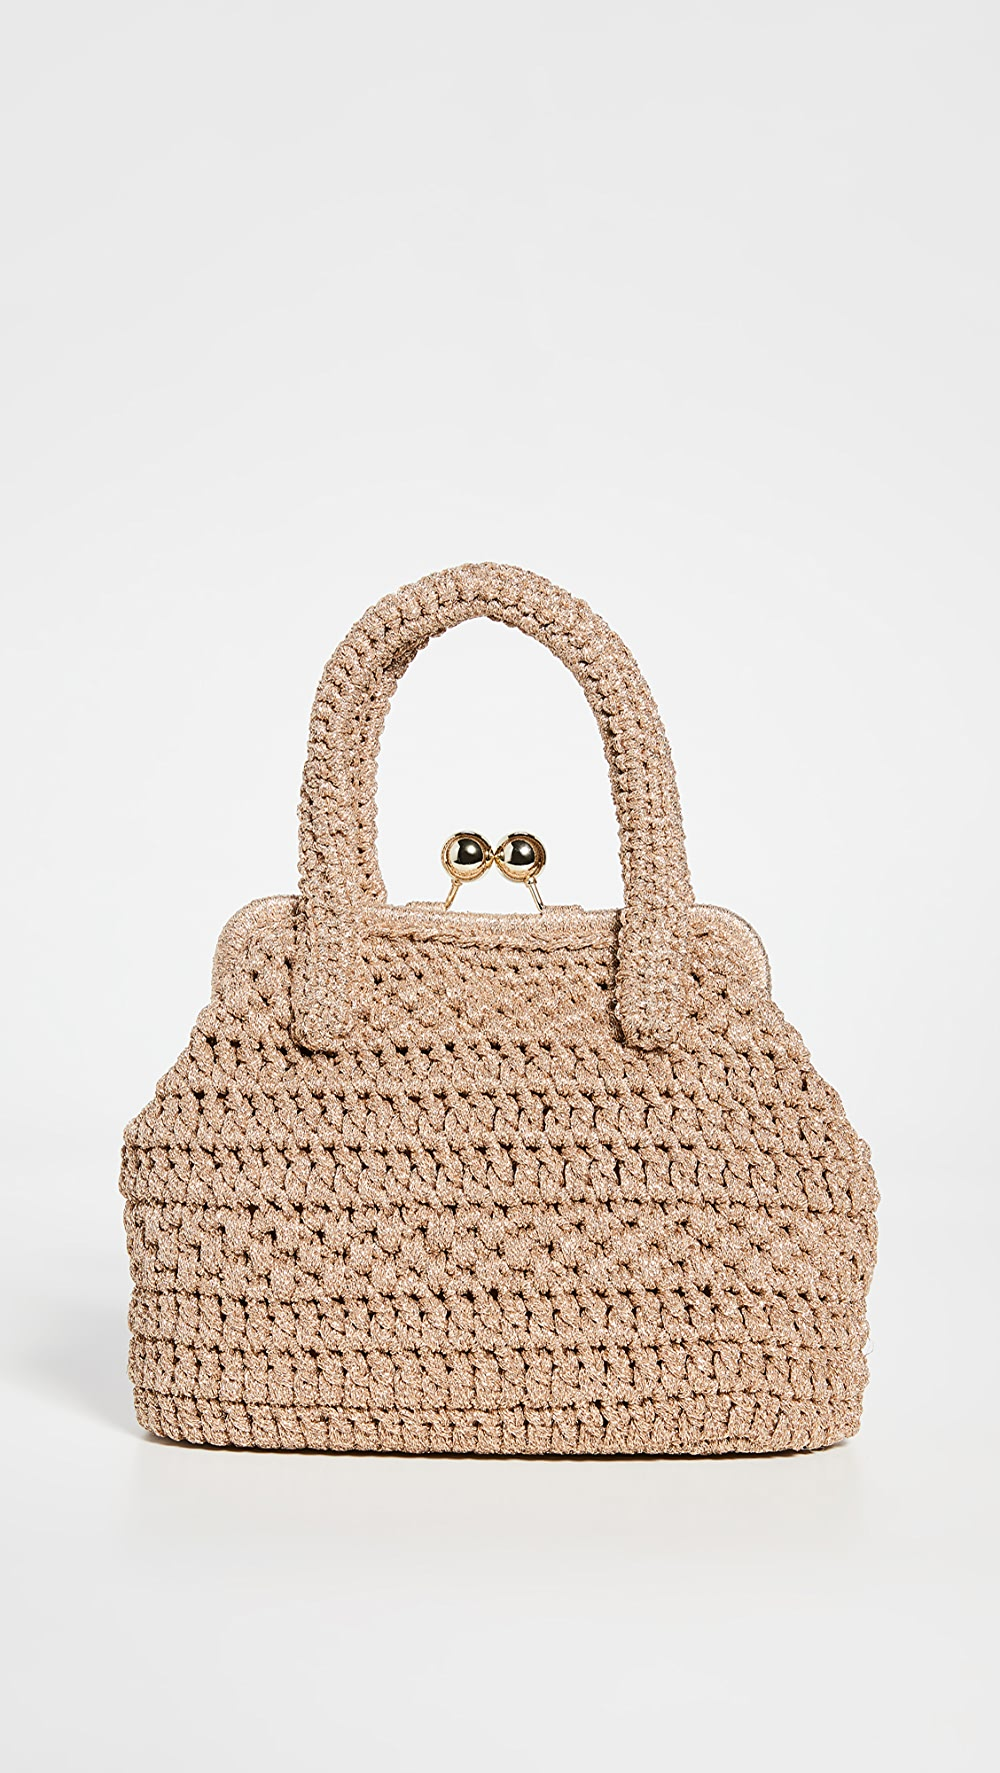 Amiable Caterina Bertini - Woven Lady Bag Without Return